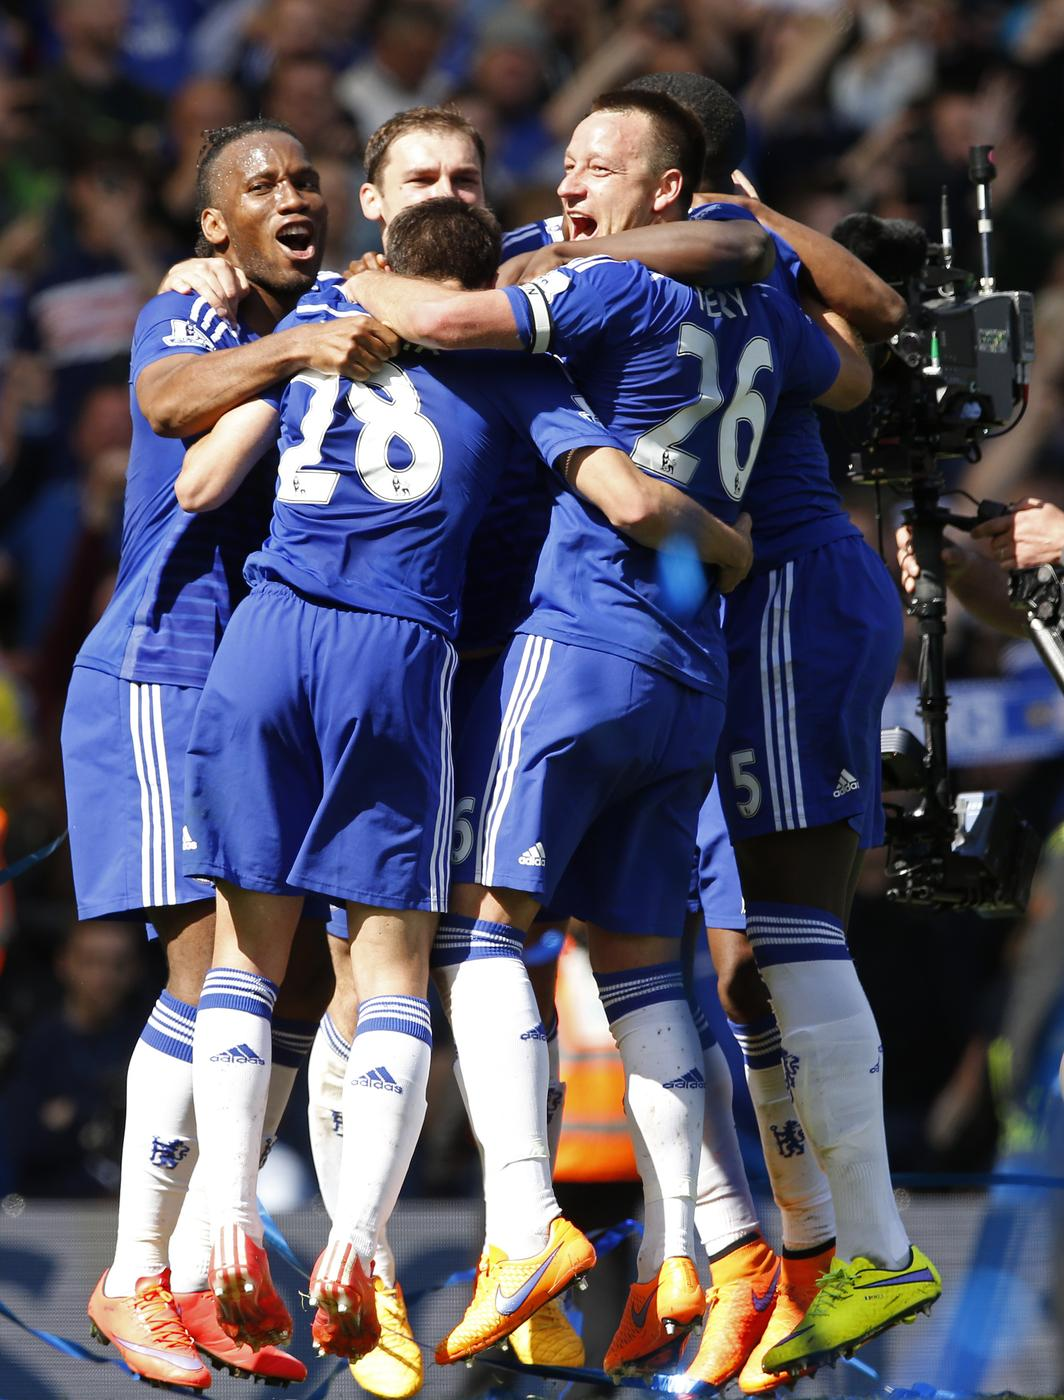 Europe next year! Chelsea wrap up Premier League and goal shifts to Champions League glory